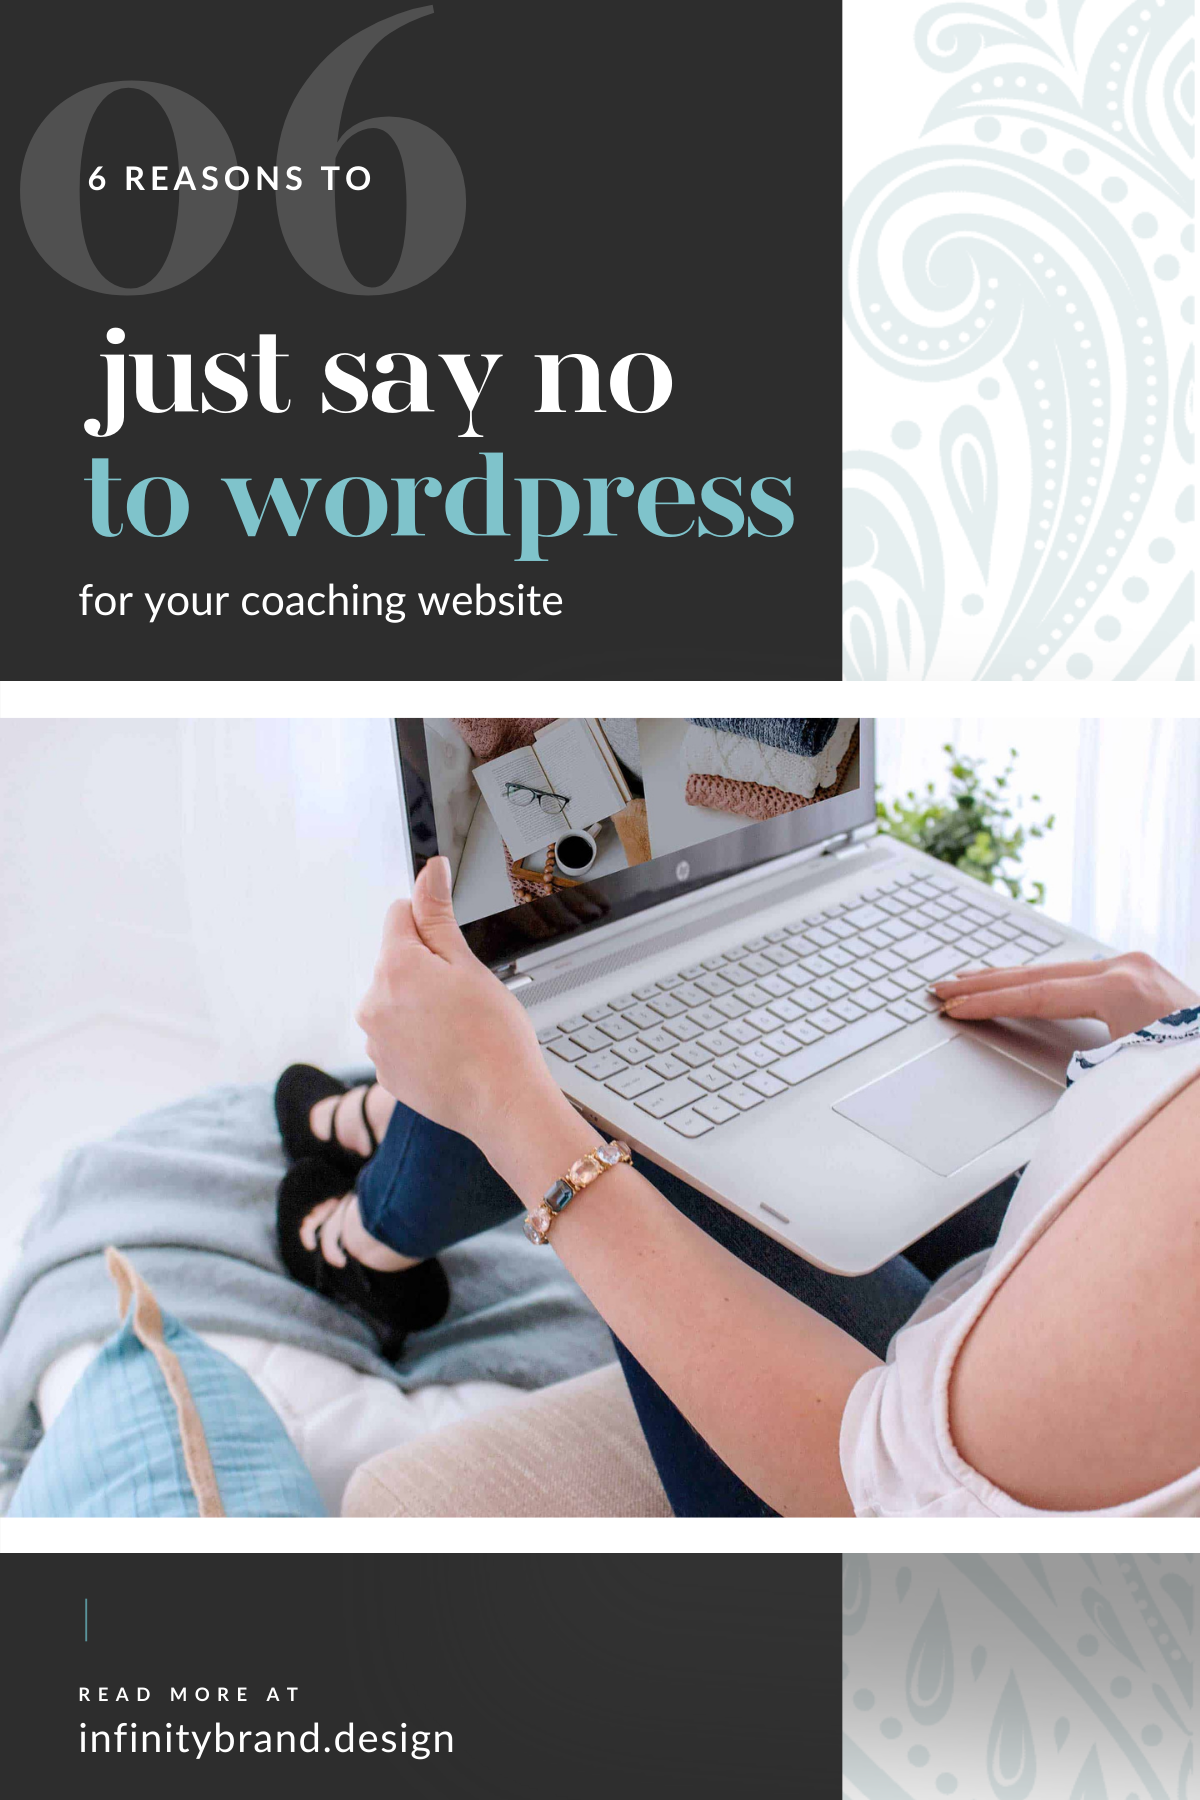 Your time is precious and you have no time to spare for your website tech issues. That's why I'm breaking down why WordPress isn't the best option for your coaching website.